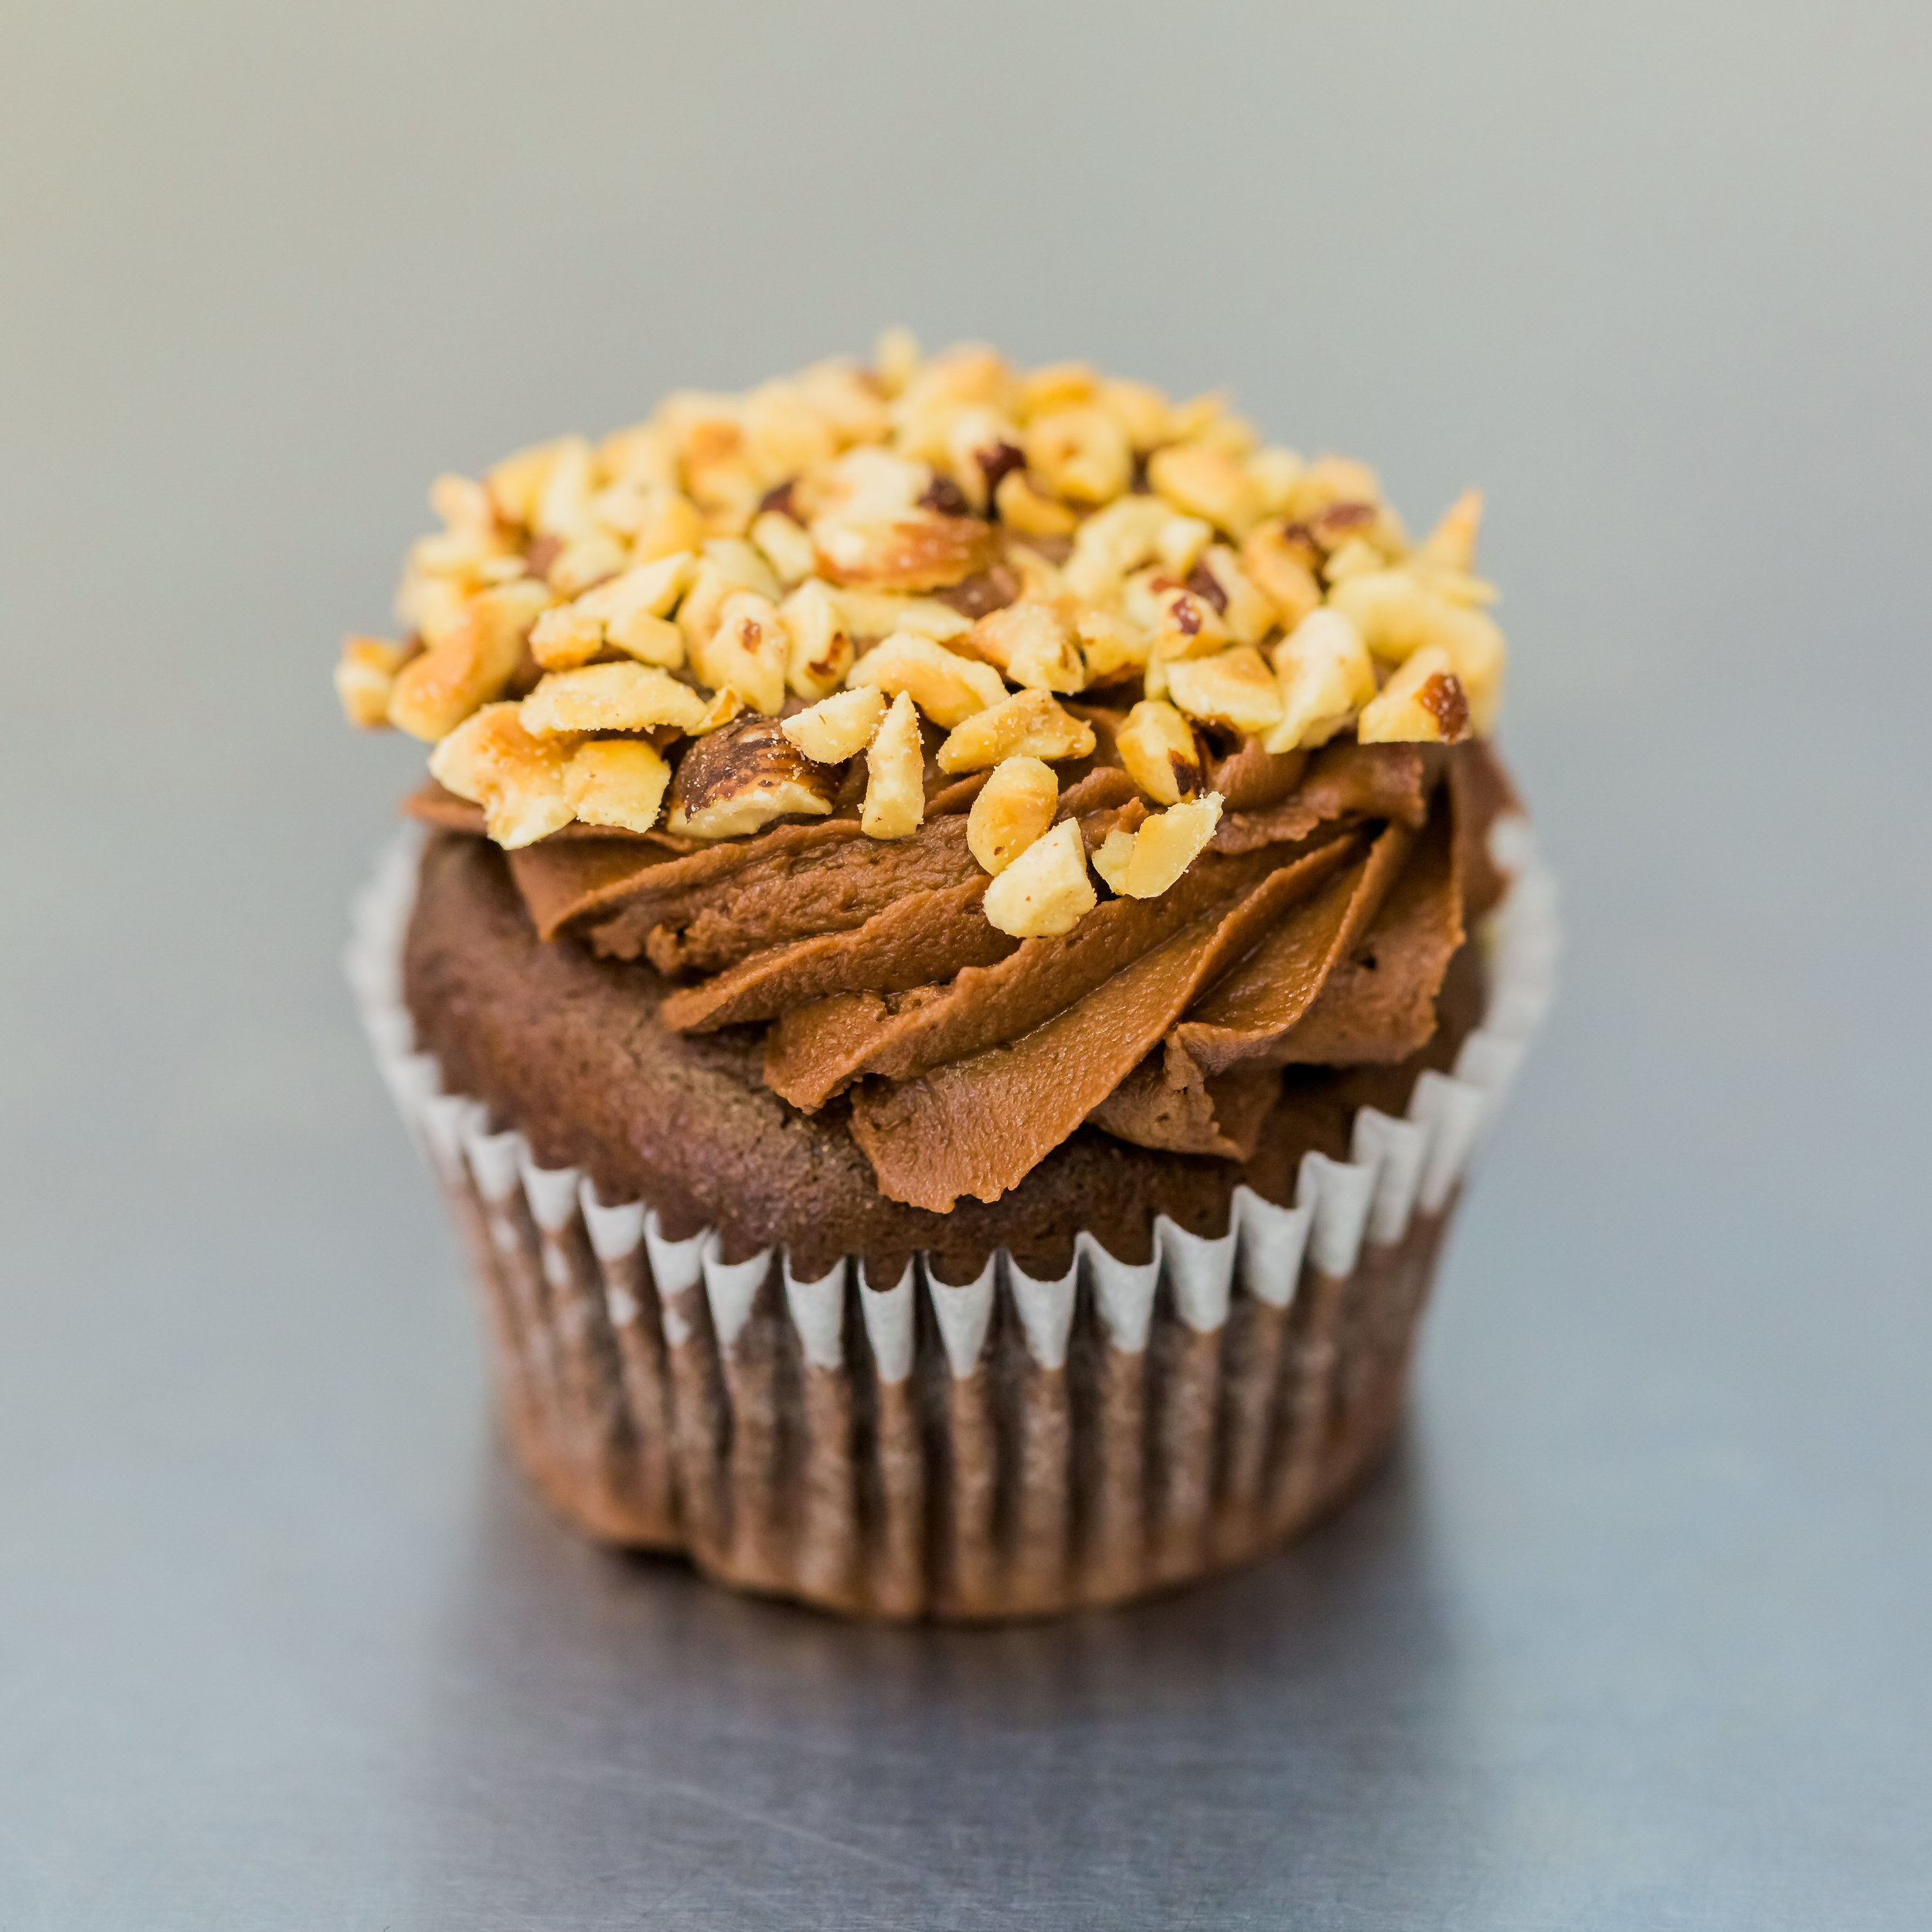 Nutella - Chocolate cake frosted with Nutella buttercream and garnished with chopped hazelnuts